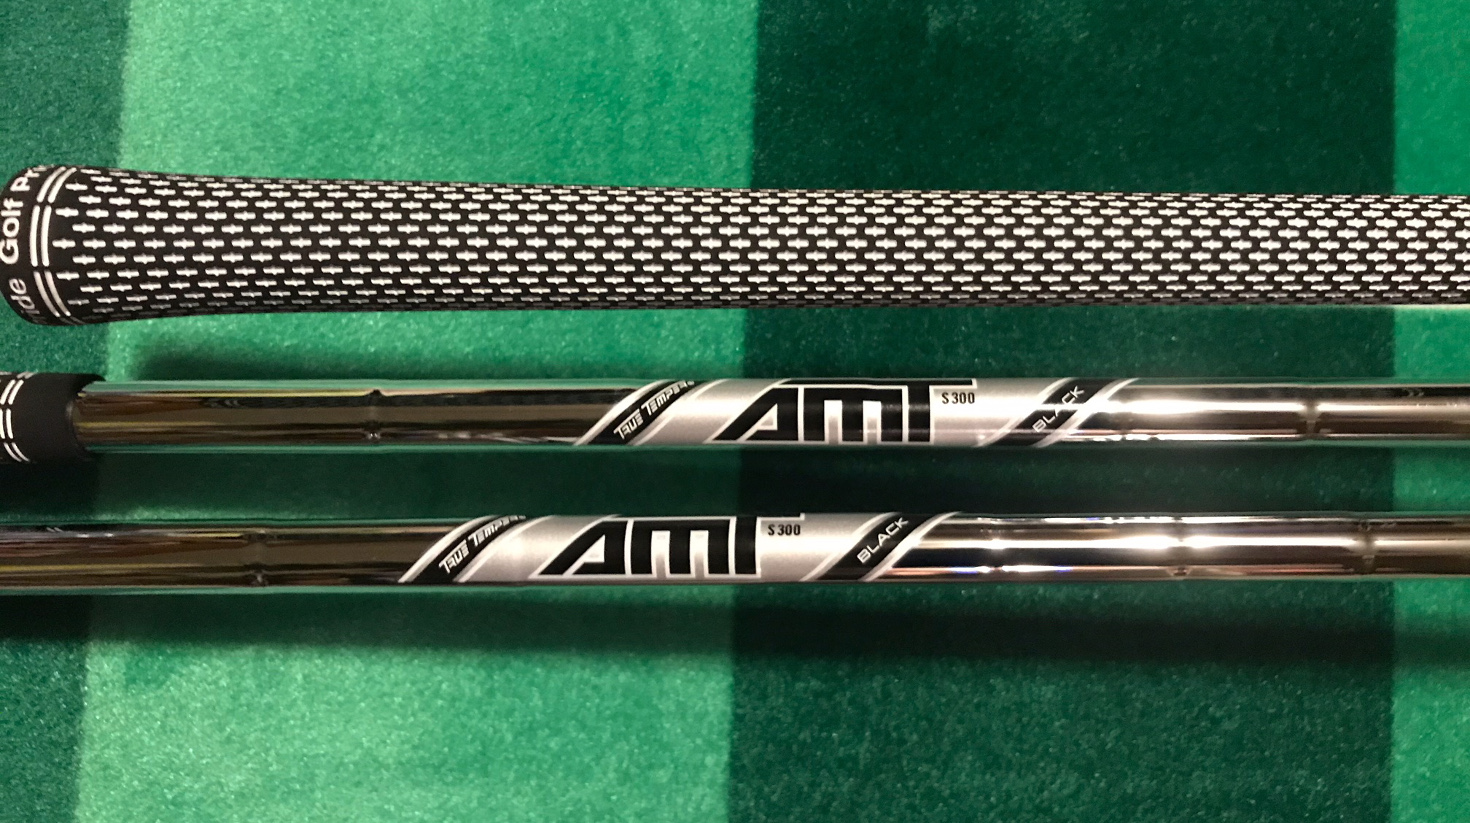 After trying several shafts, we settled on the AMT Black as the best fit for distance and accuracy.